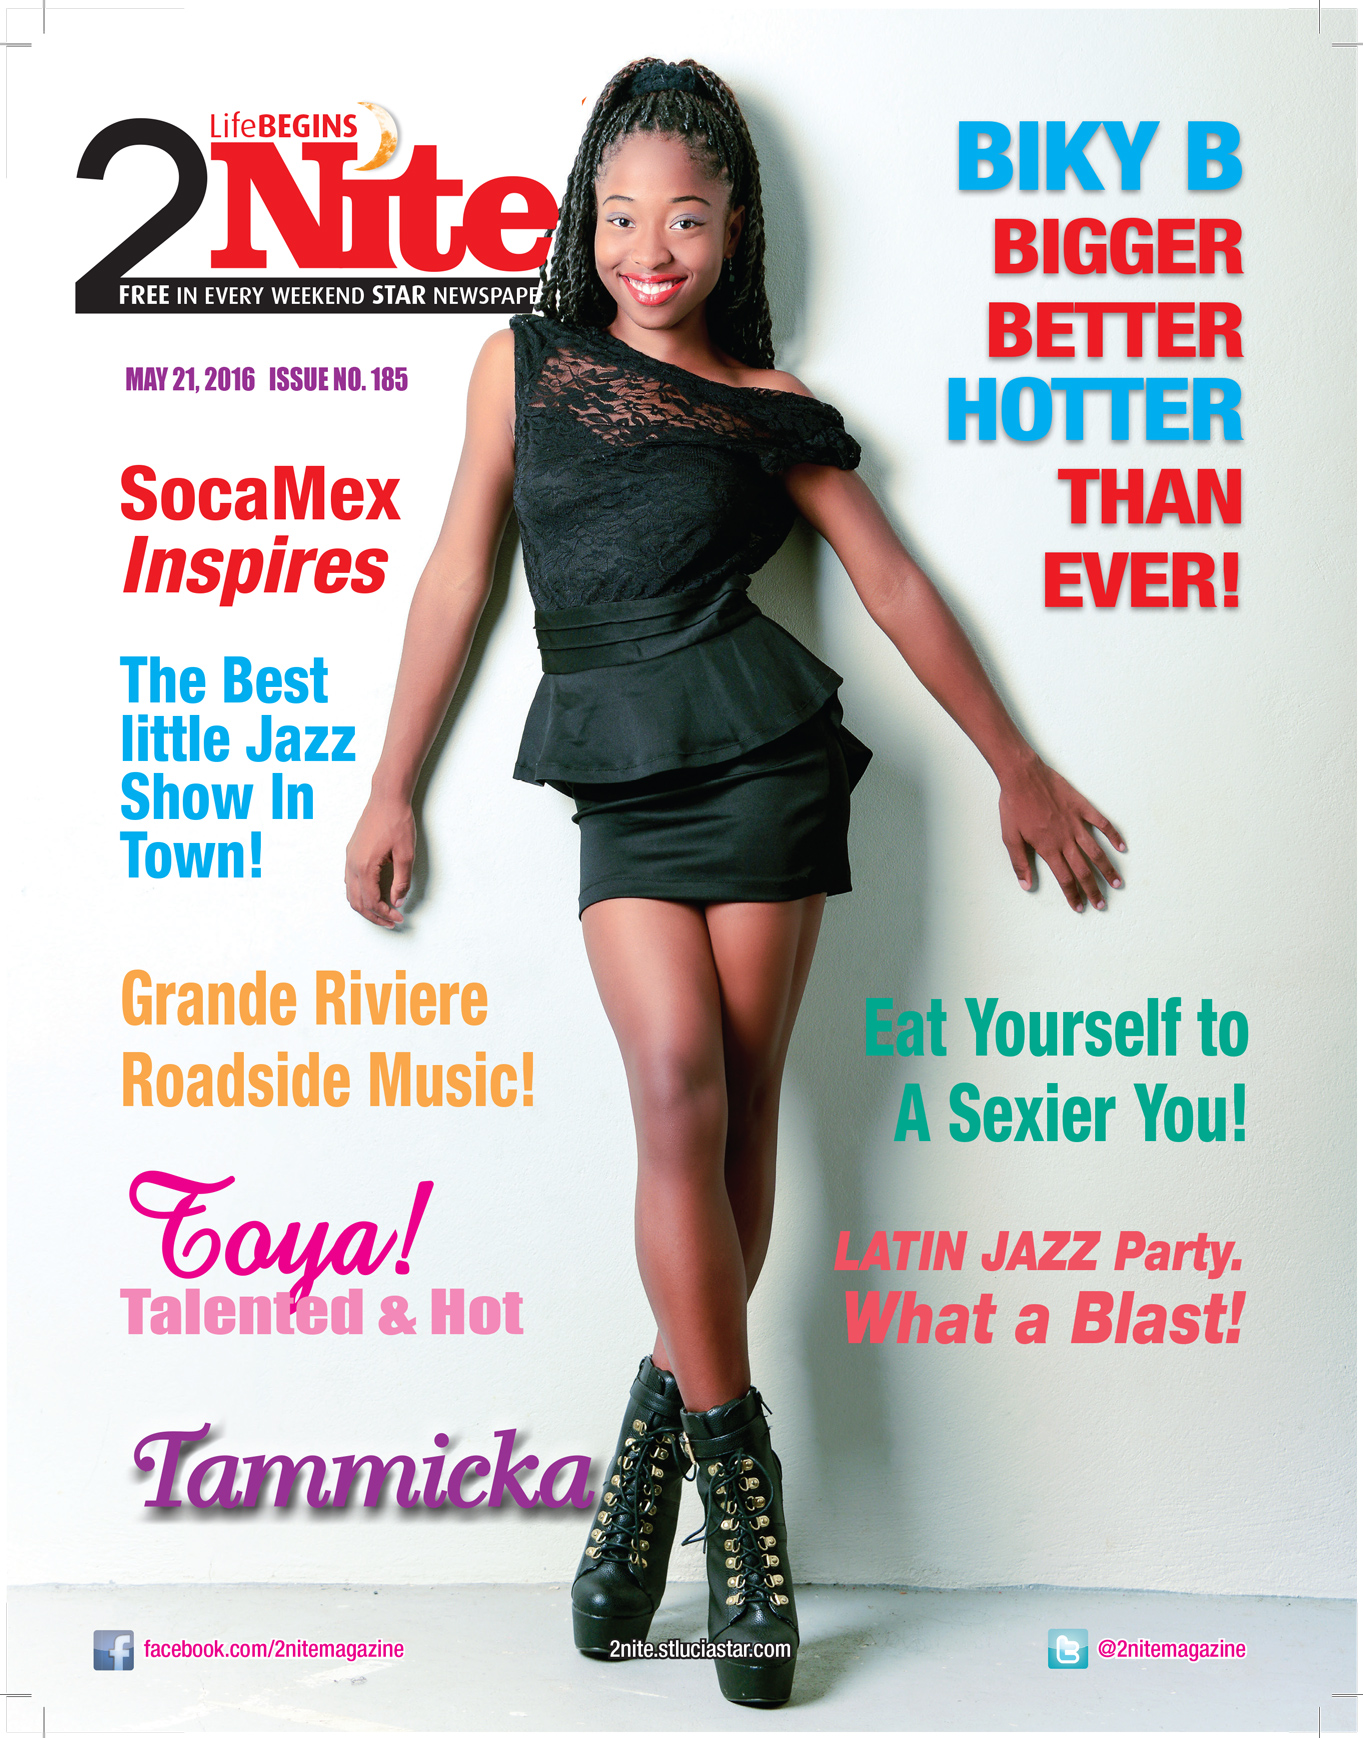 2Nite Magazine for Saturday May 21st, 2016 - Issue no. 183